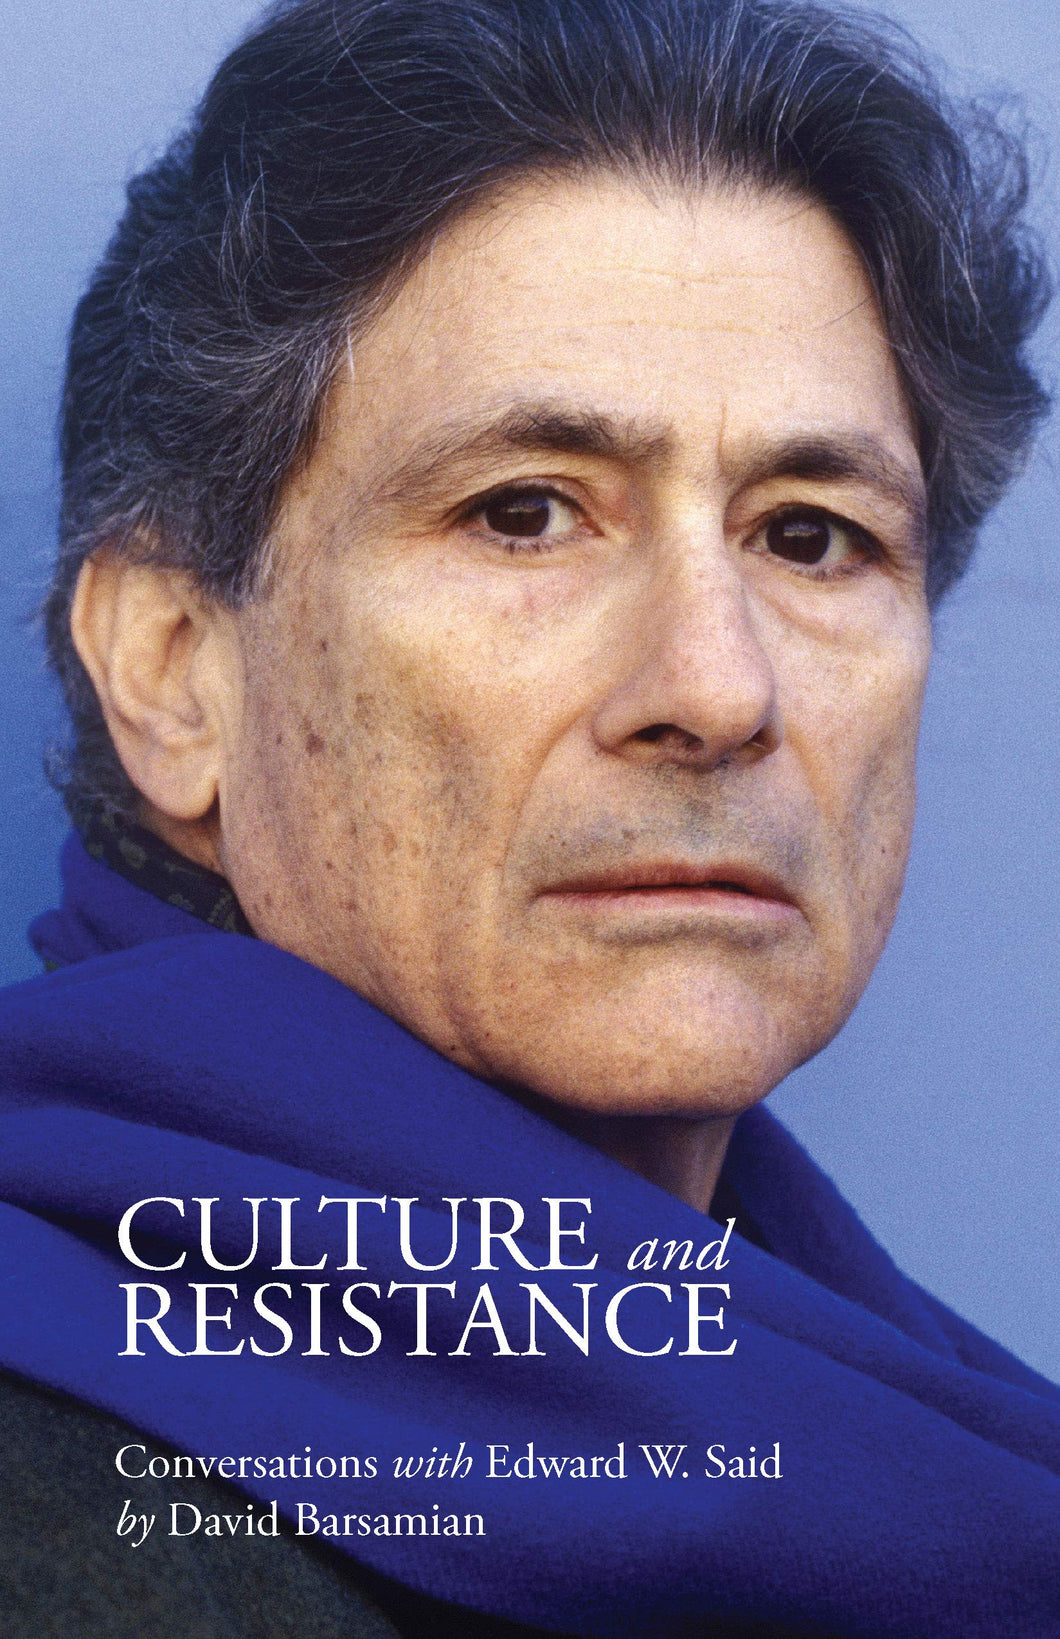 CULTURE AND RESISTANCE - David Barsamian